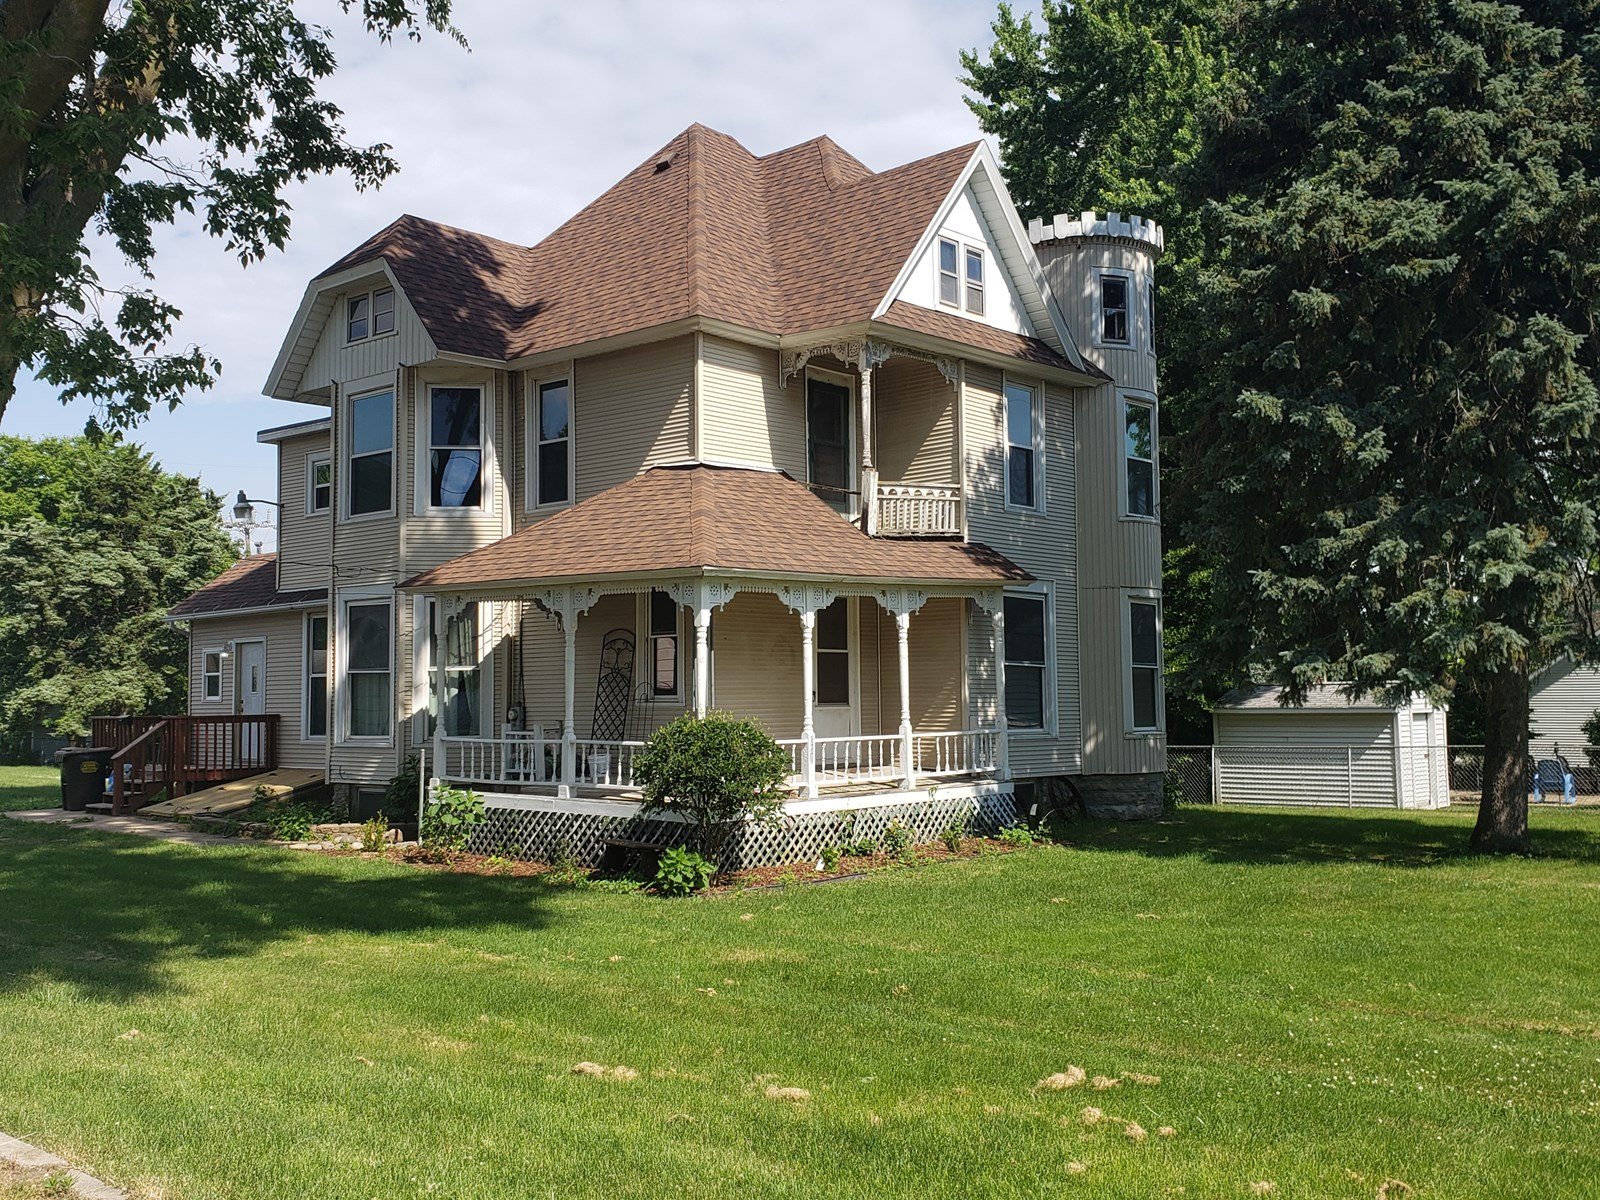 Large 4 bedroom house with 2 full baths.